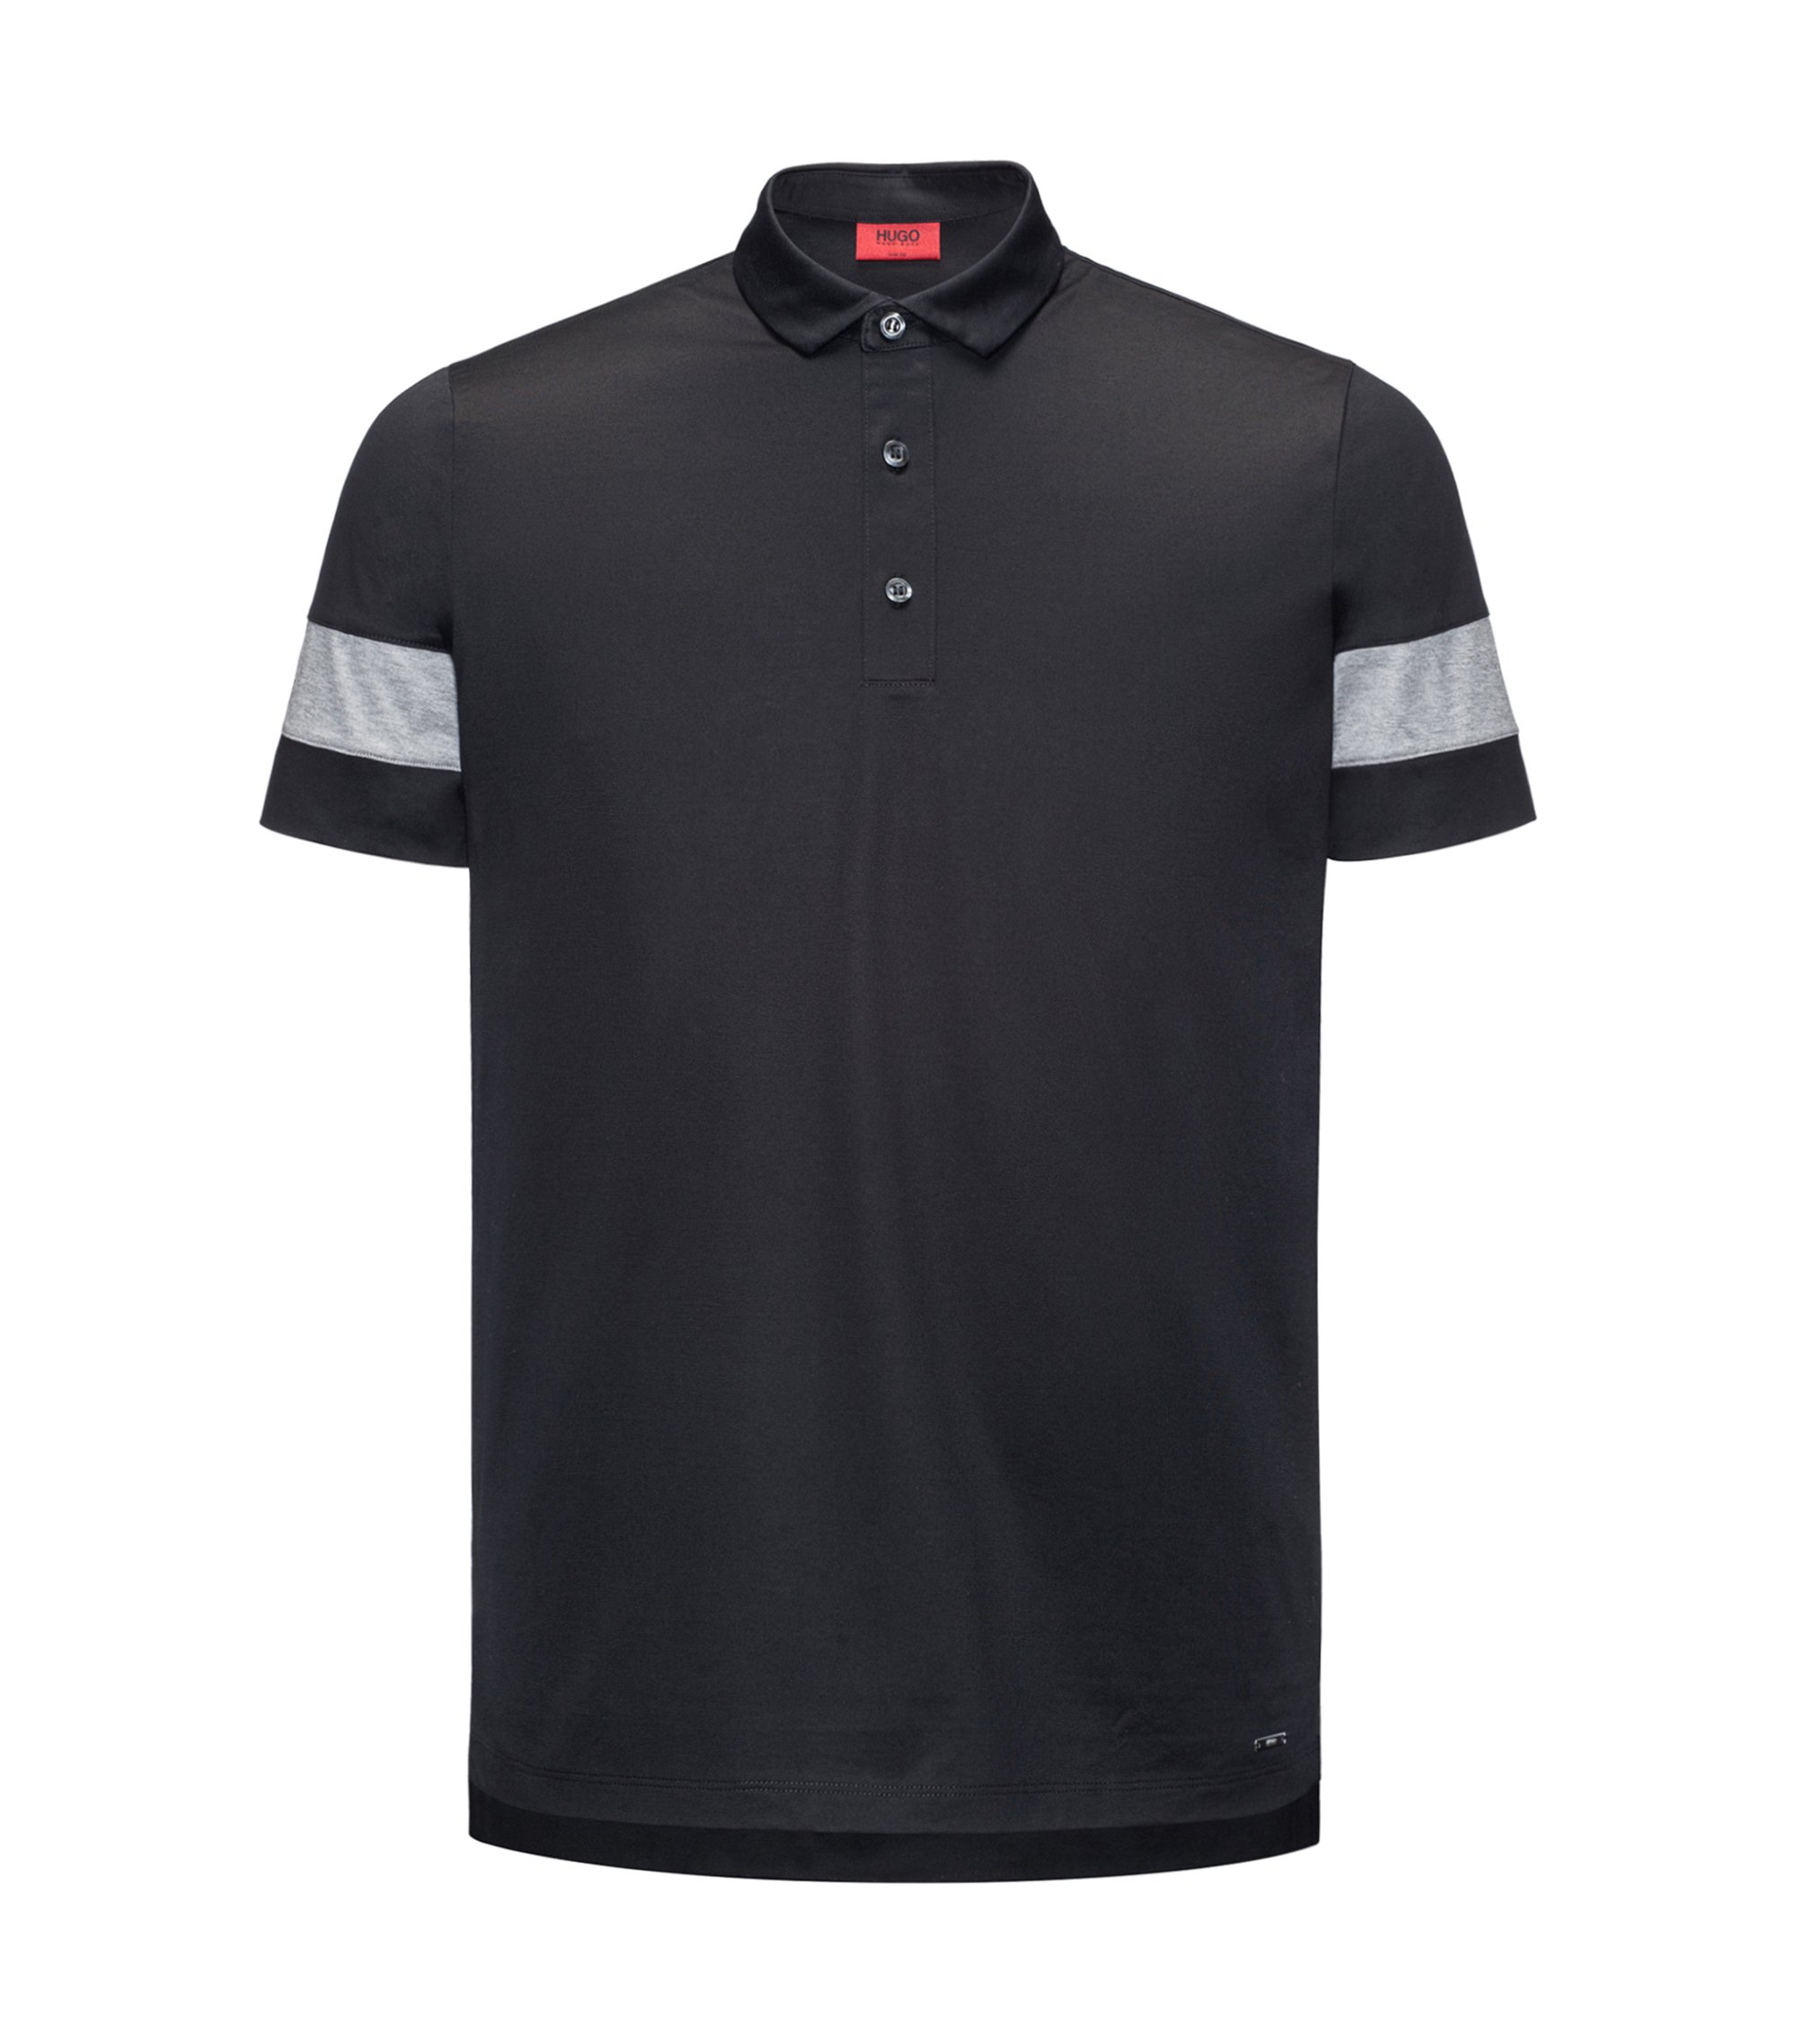 Thick-Striped Mercerized Cotton Polo Shirt, Slim Fit | Drooks, Black